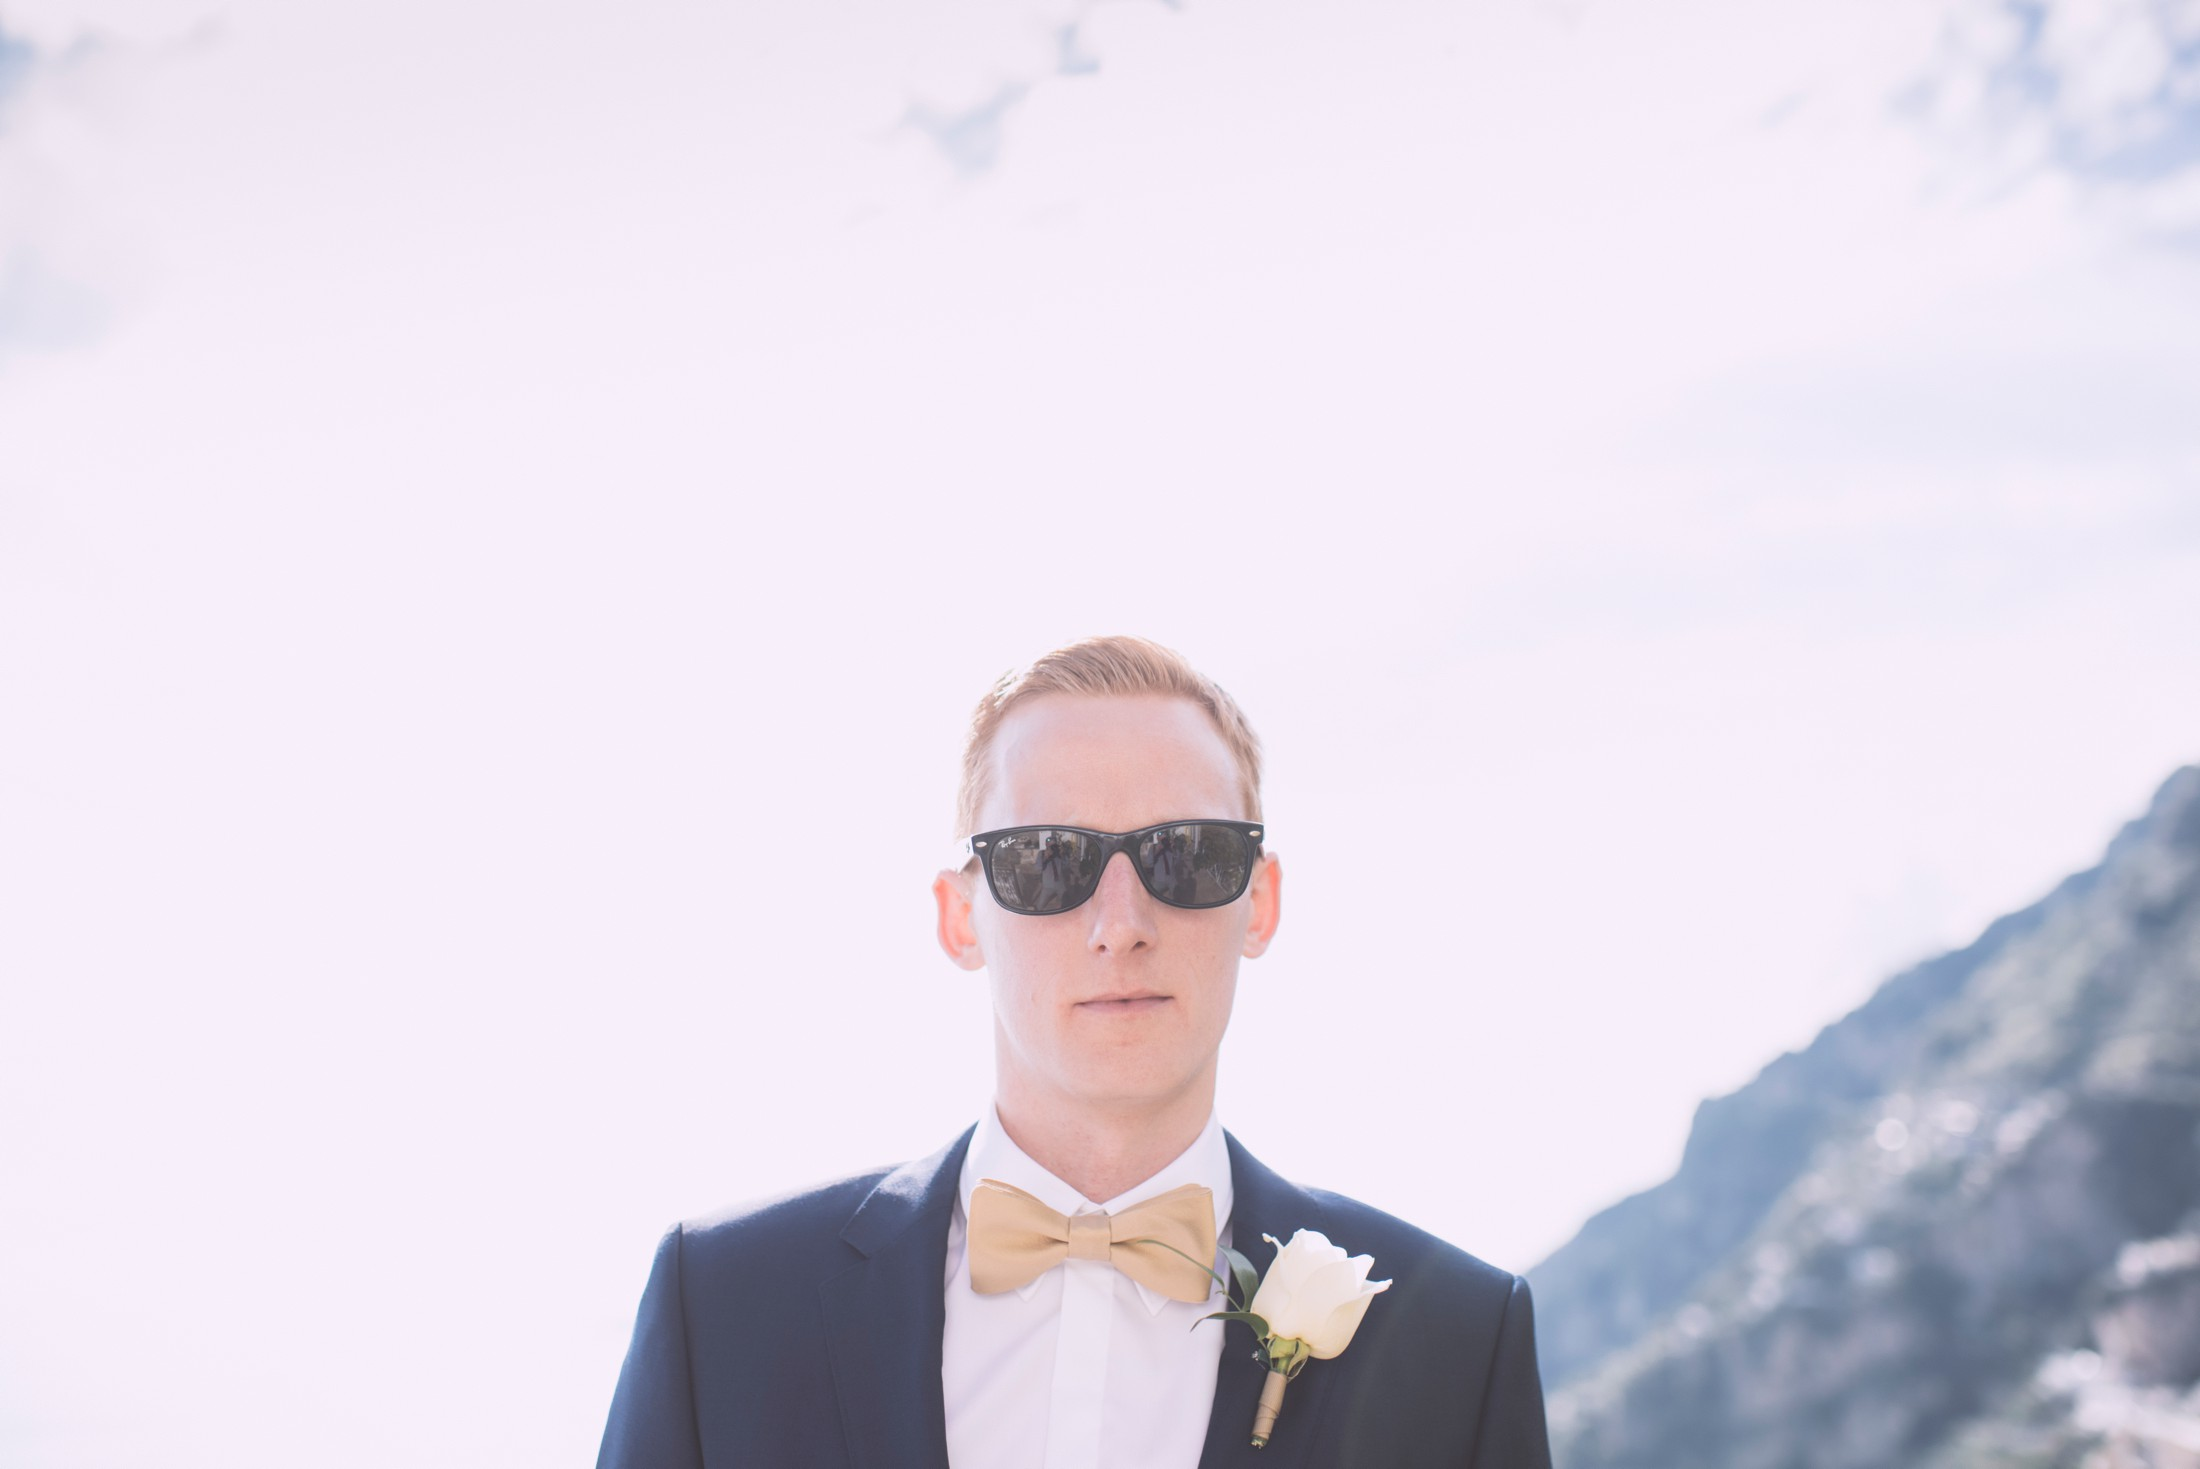 positano wedding groom's portrait with sun glasses